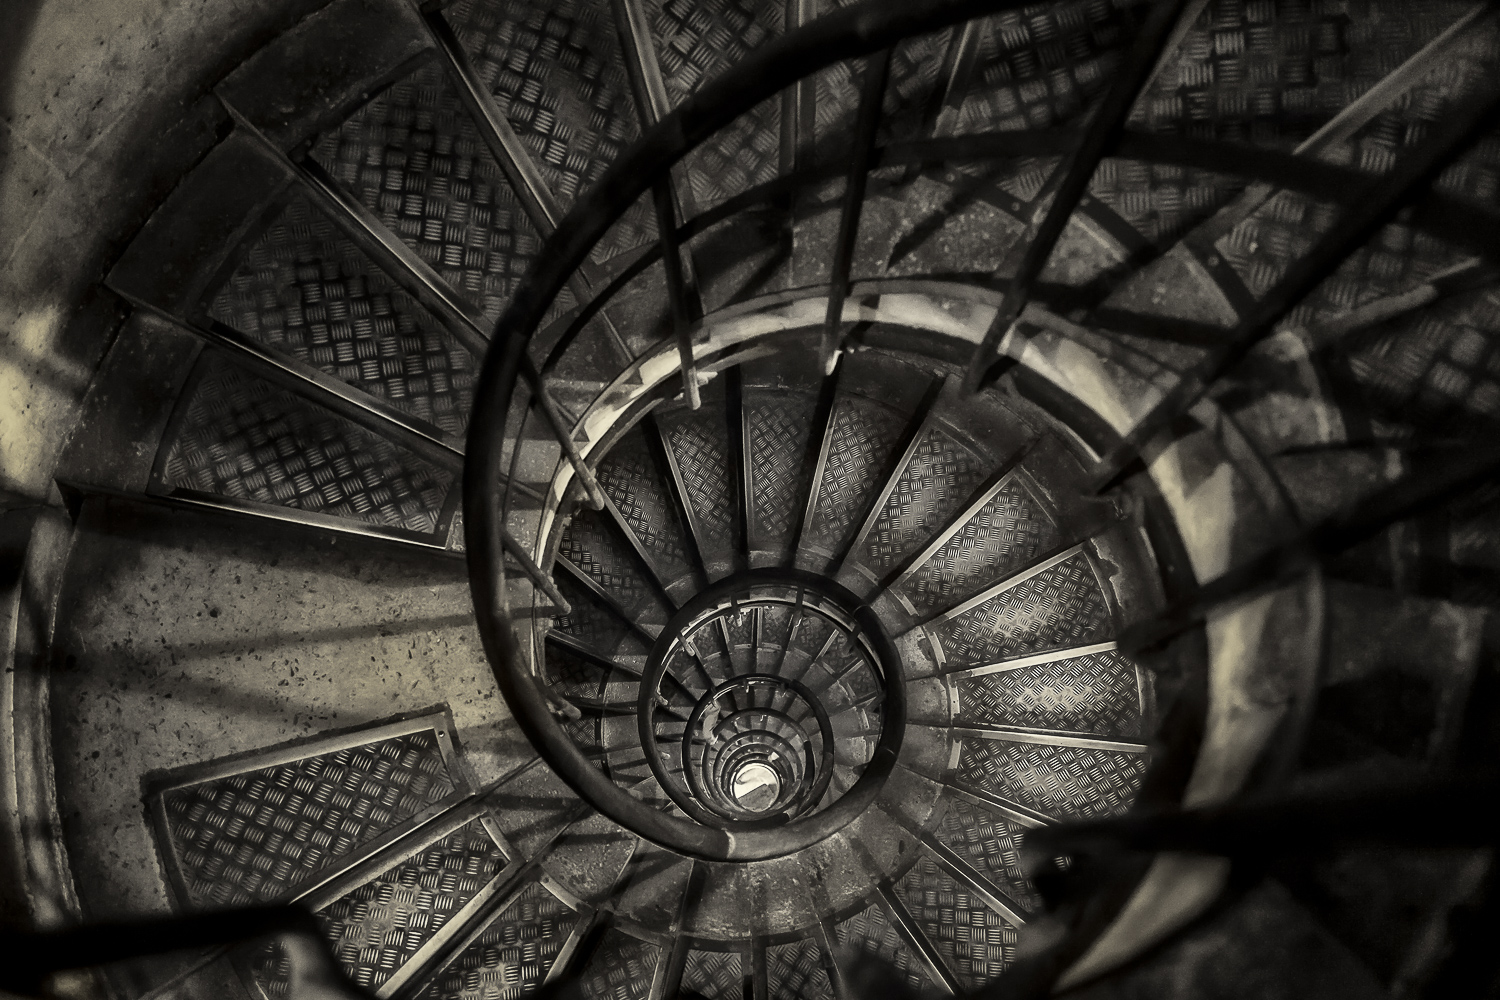 A moody  birdseye view  looking down a narrow stairwell at the  Arc de Triomphe  in  Paris, France .